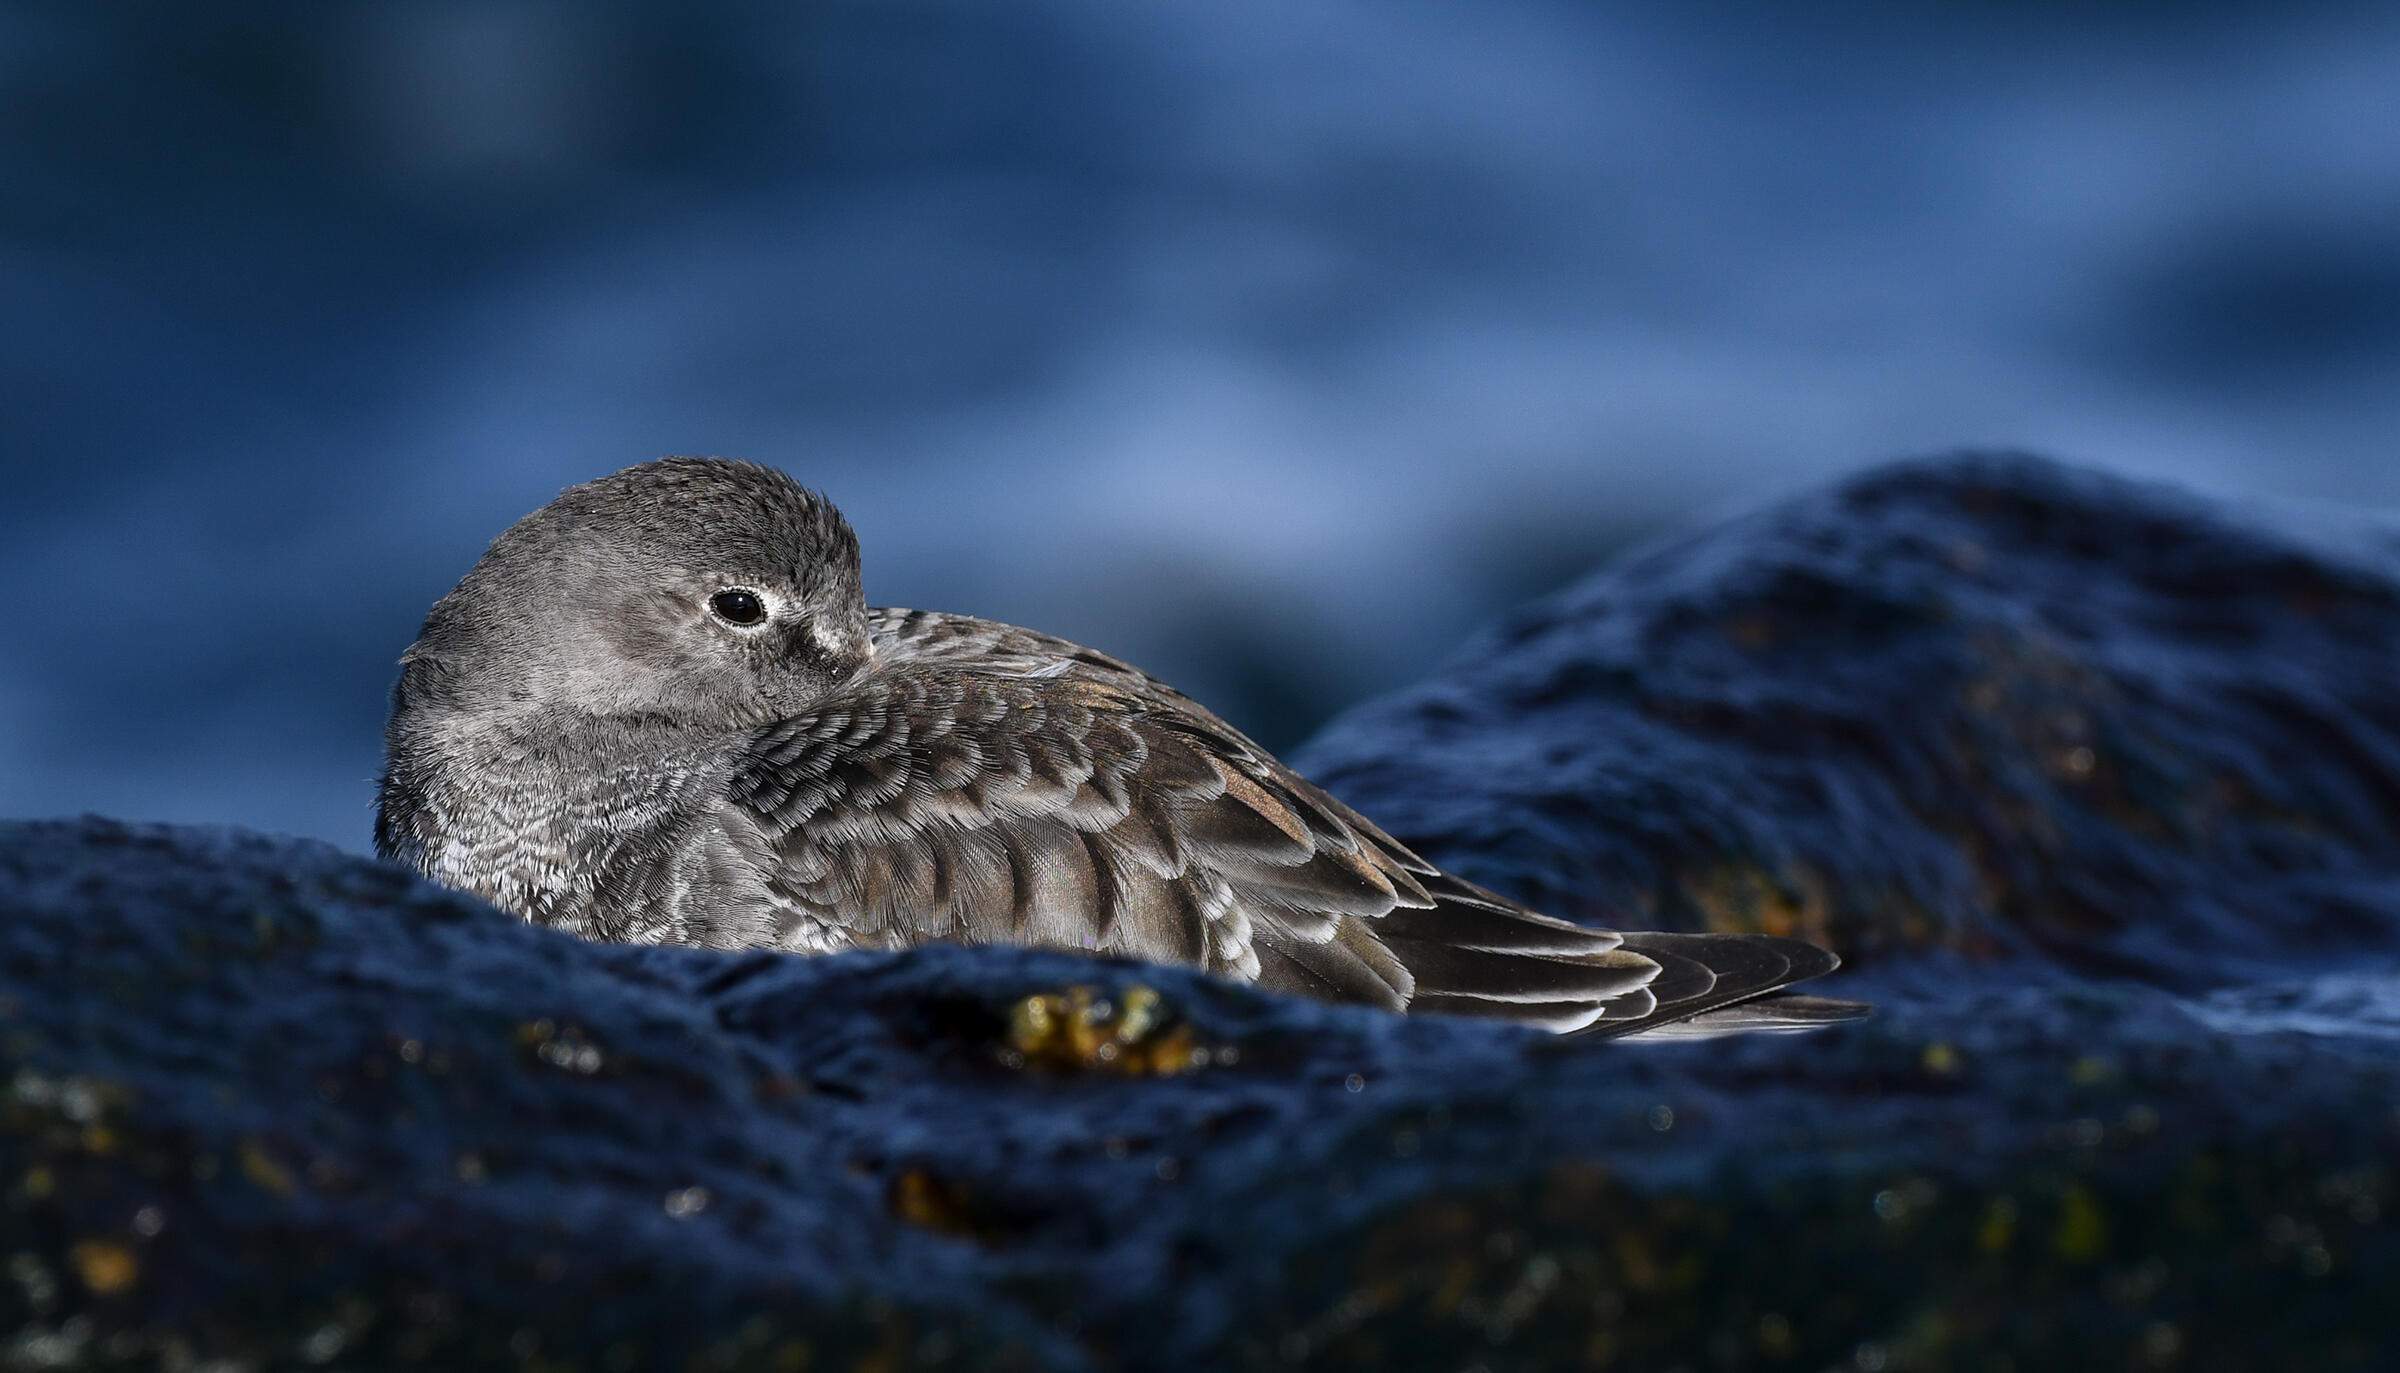 On a wet, rocky shore, a Purple Sandpiper sits with its beak tucked under its brown and gray wing, the blurred blue ocean waves in the background.